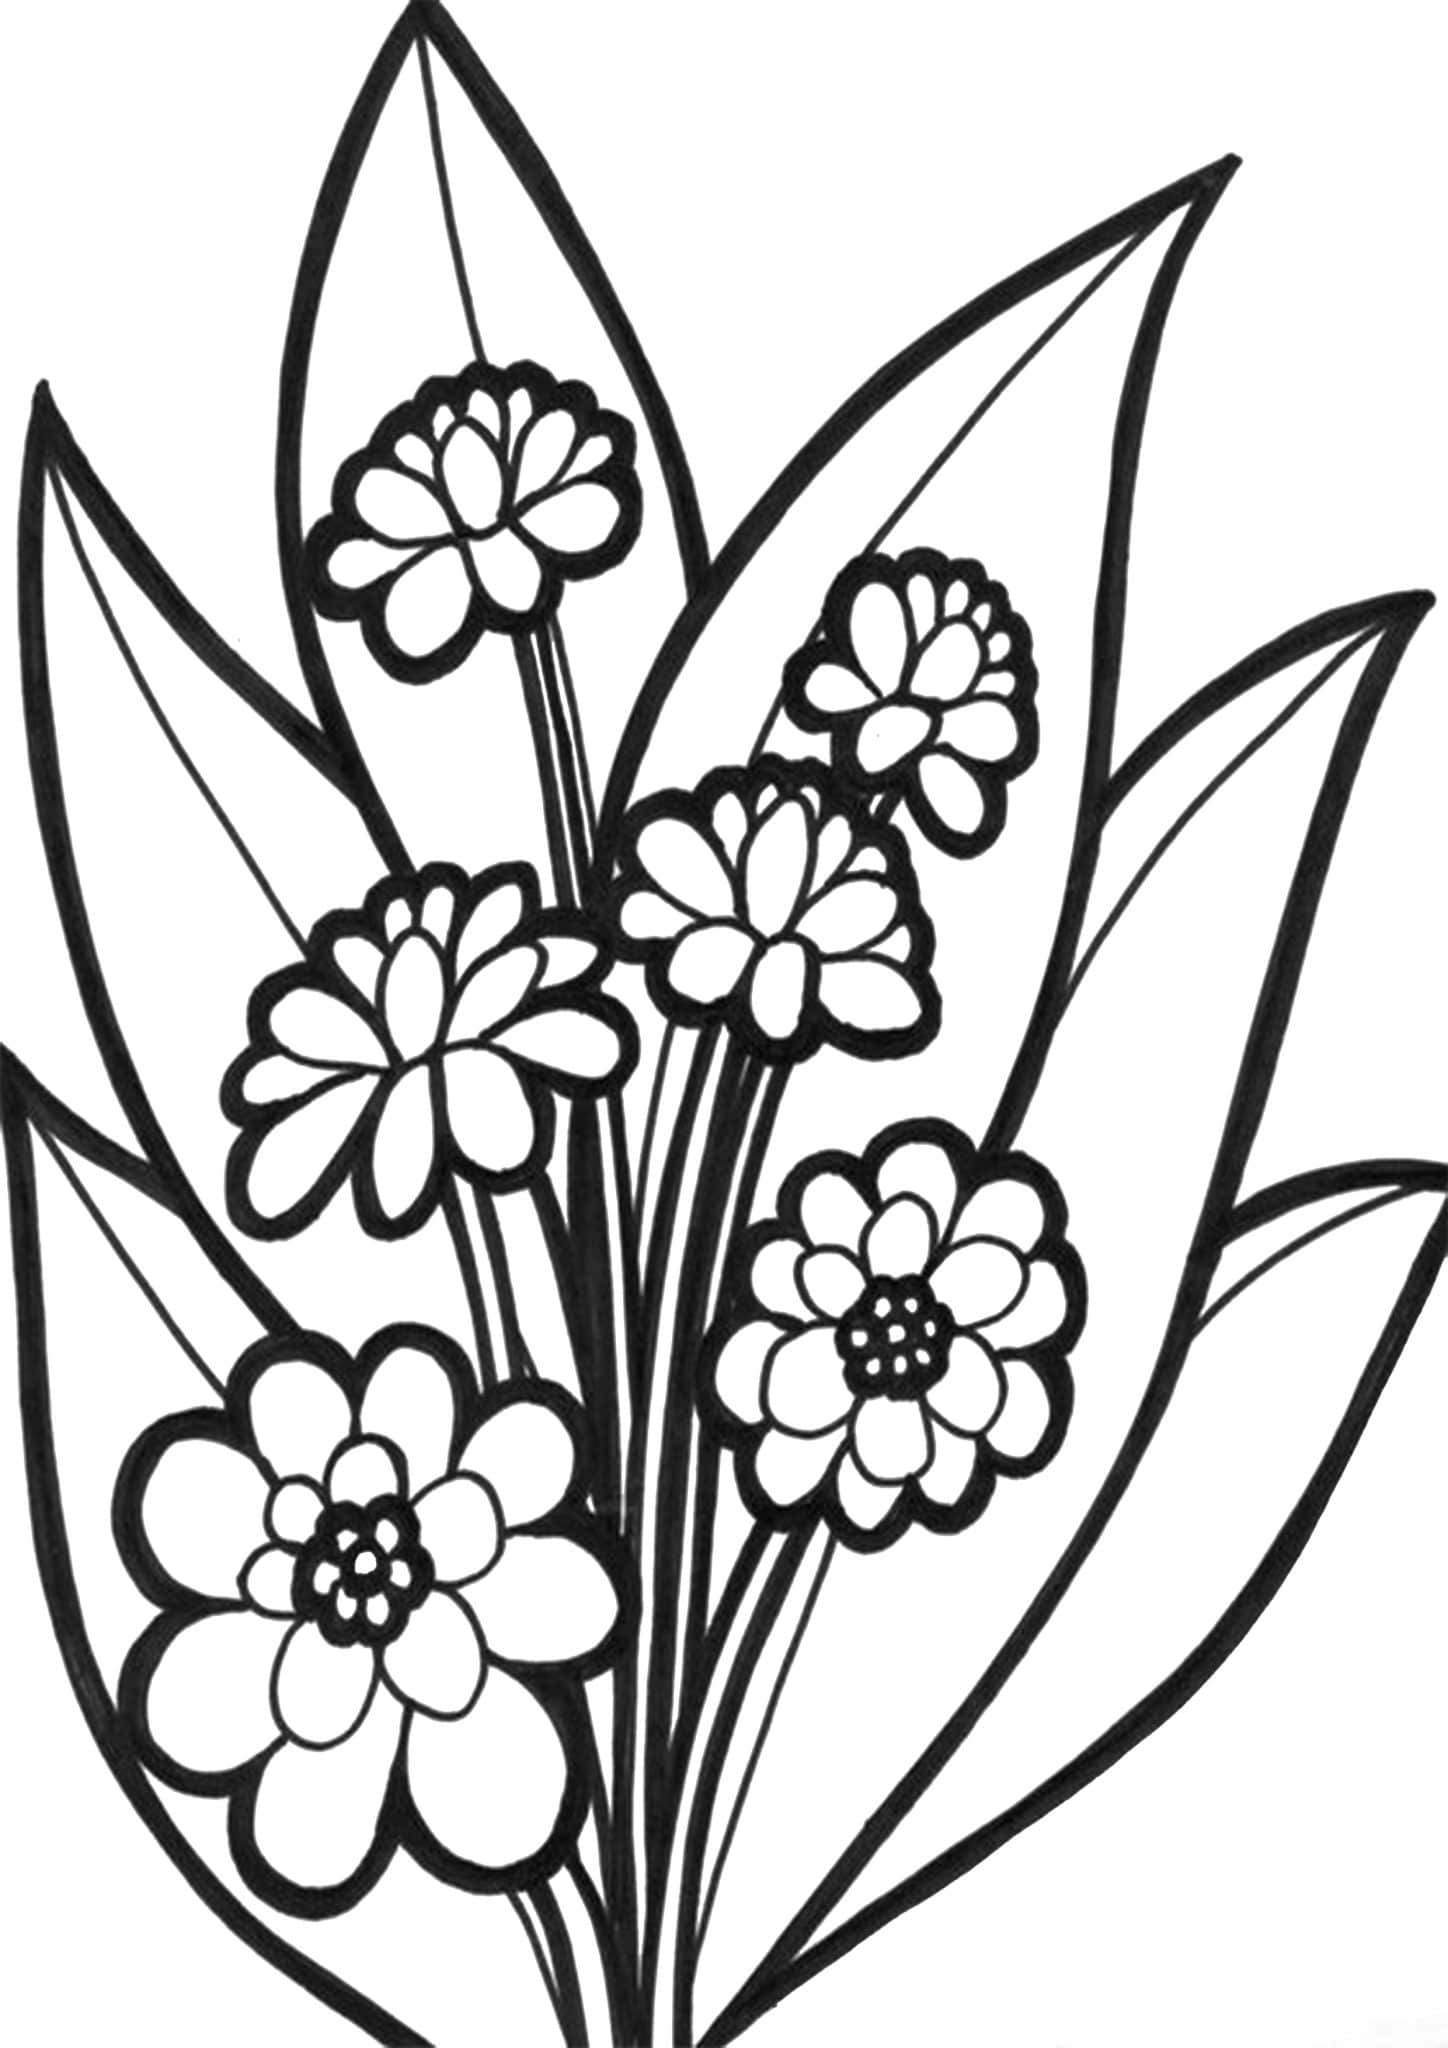 Coloring pic of flower